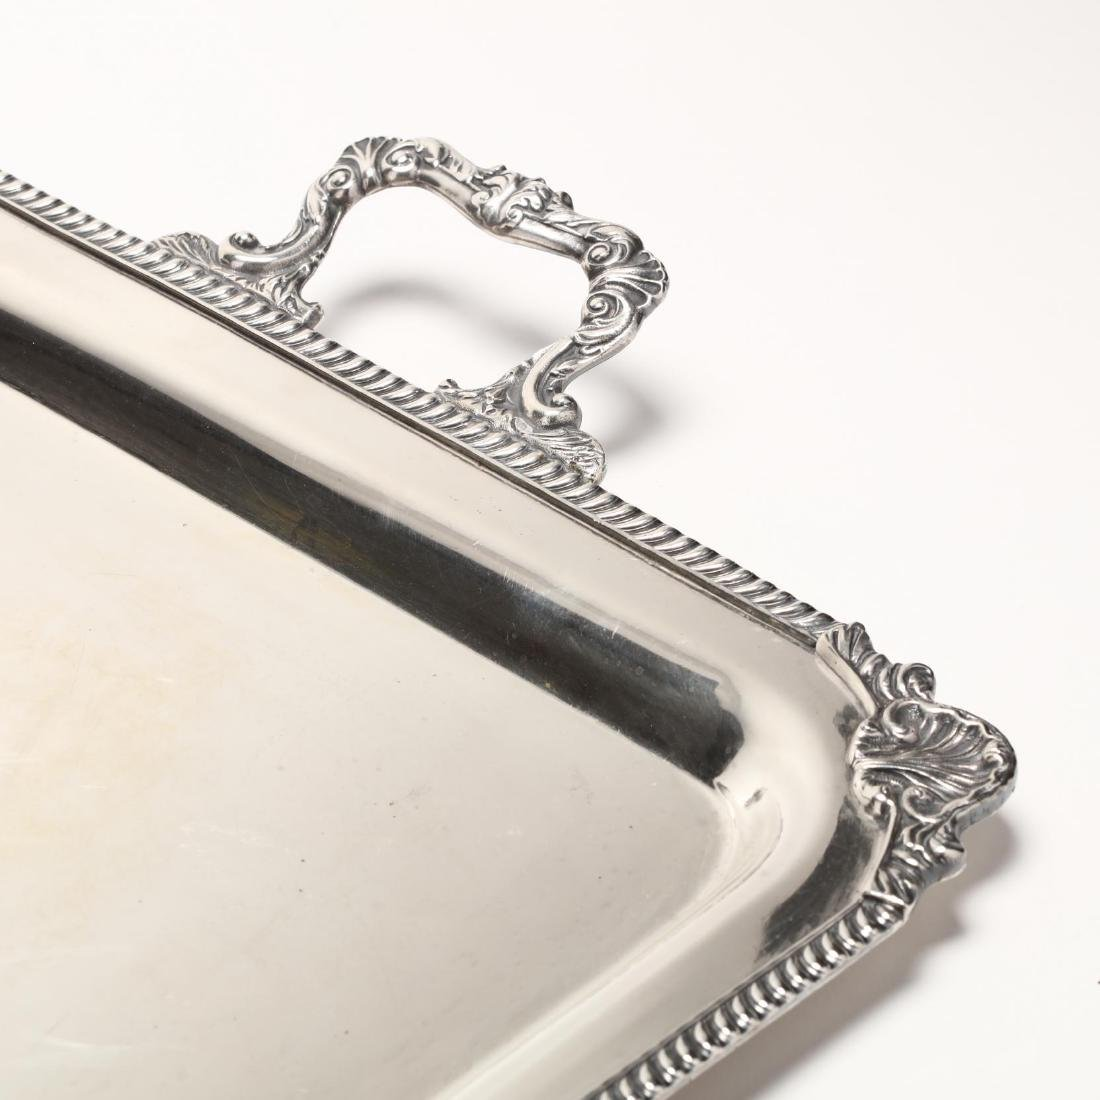 An American Sterling Silver Hostess Tray - 2